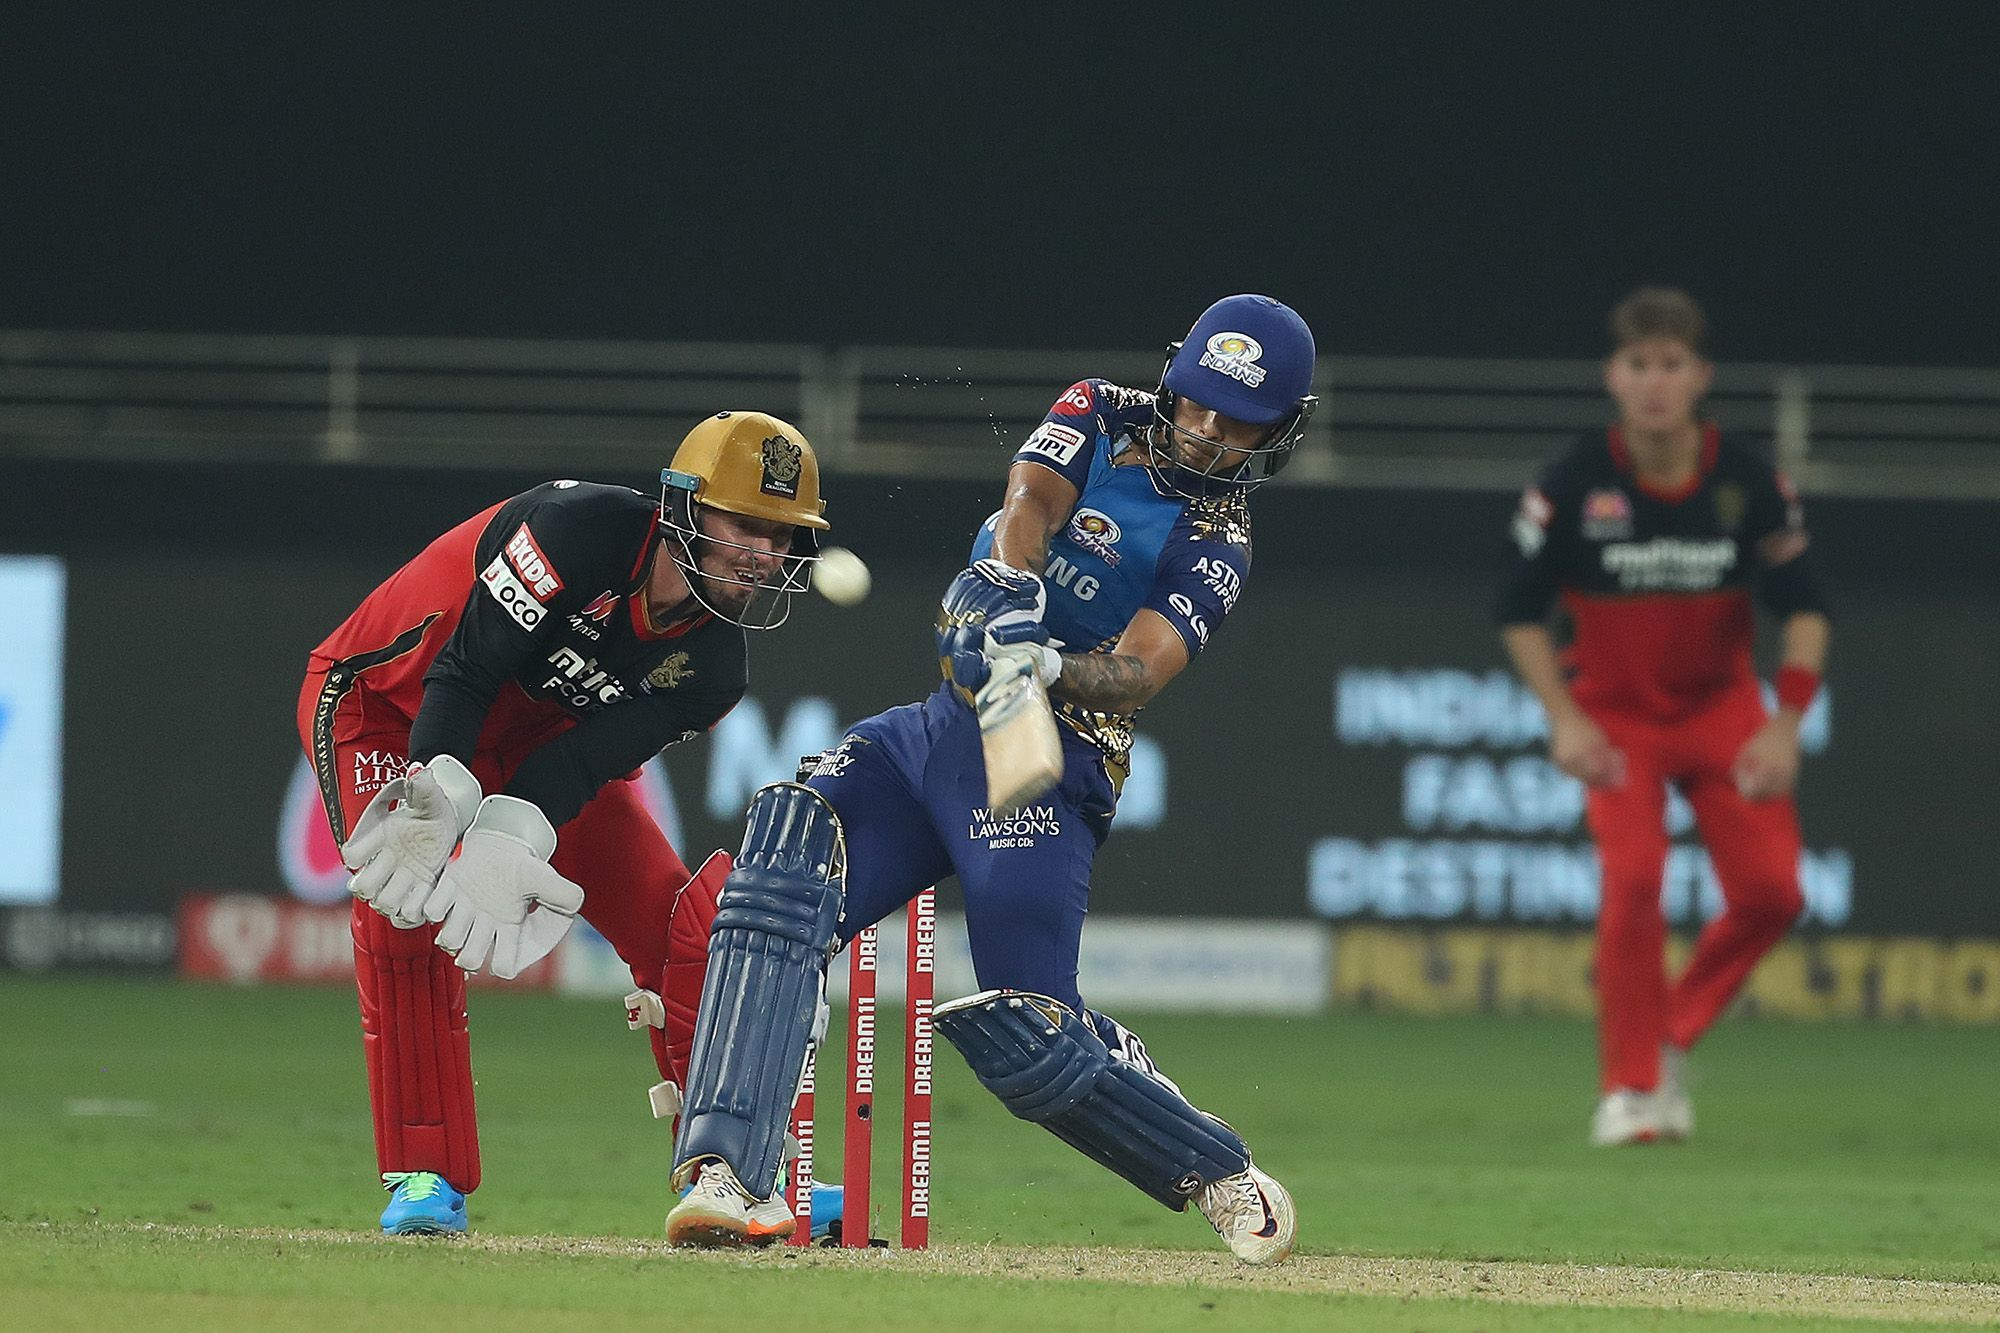 IPL 2020: Mumbai Indians vs Rajasthan Royals Schedule and Match Timings in India: When and Where to Watch MI vs RR Live Streaming Online